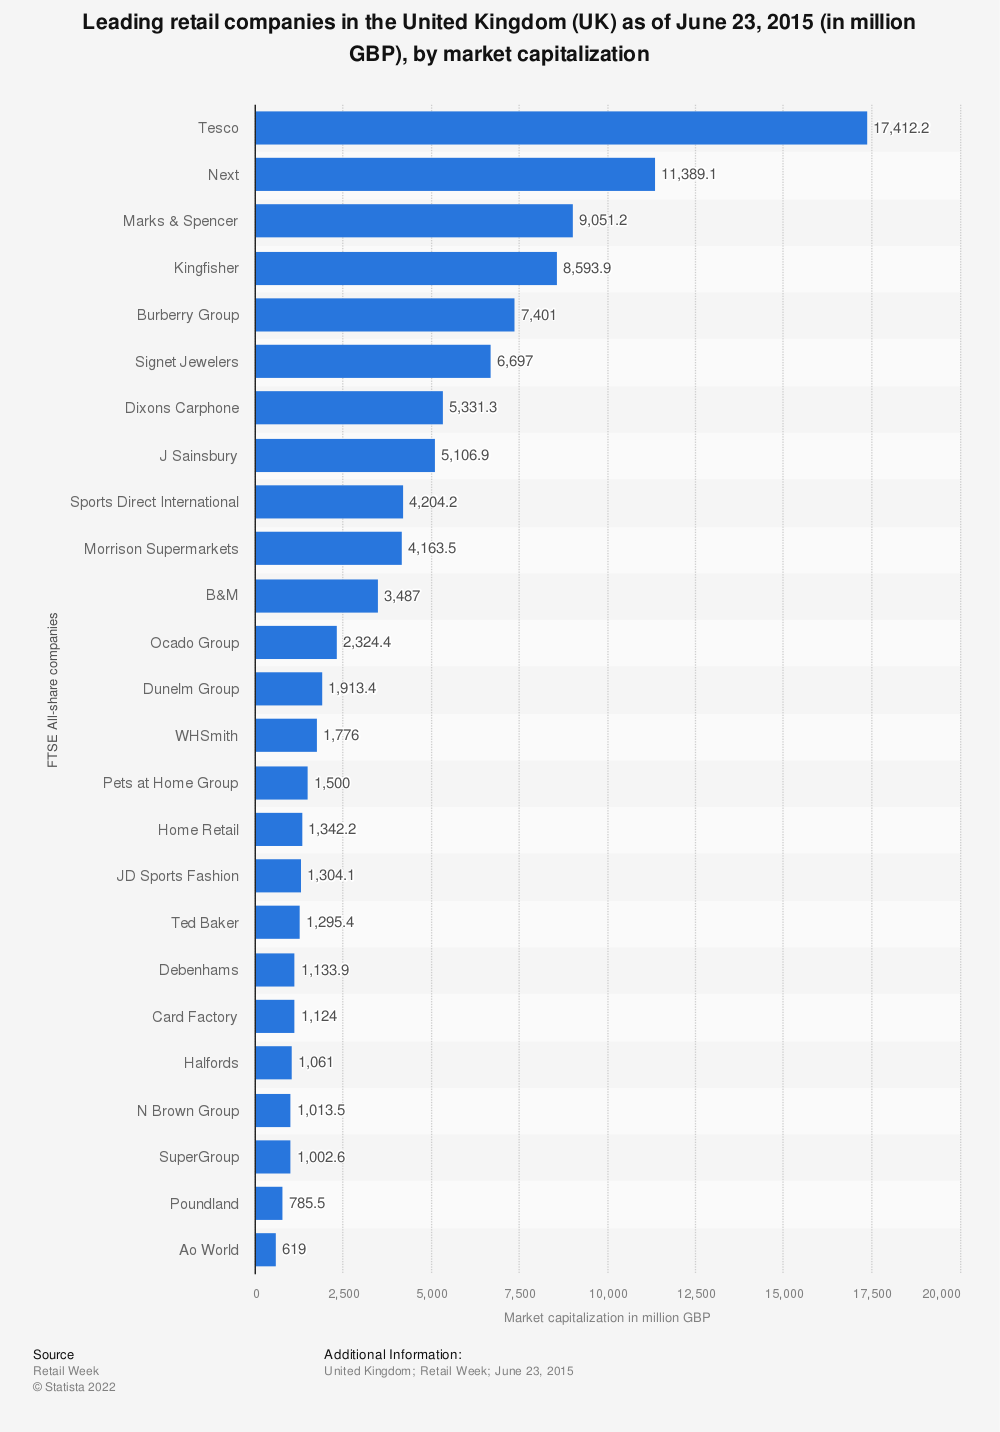 Statistic: Leading retail companies in the United Kingdom (UK) as of June 23, 2015 (in million GBP), by market capitalization  | Statista